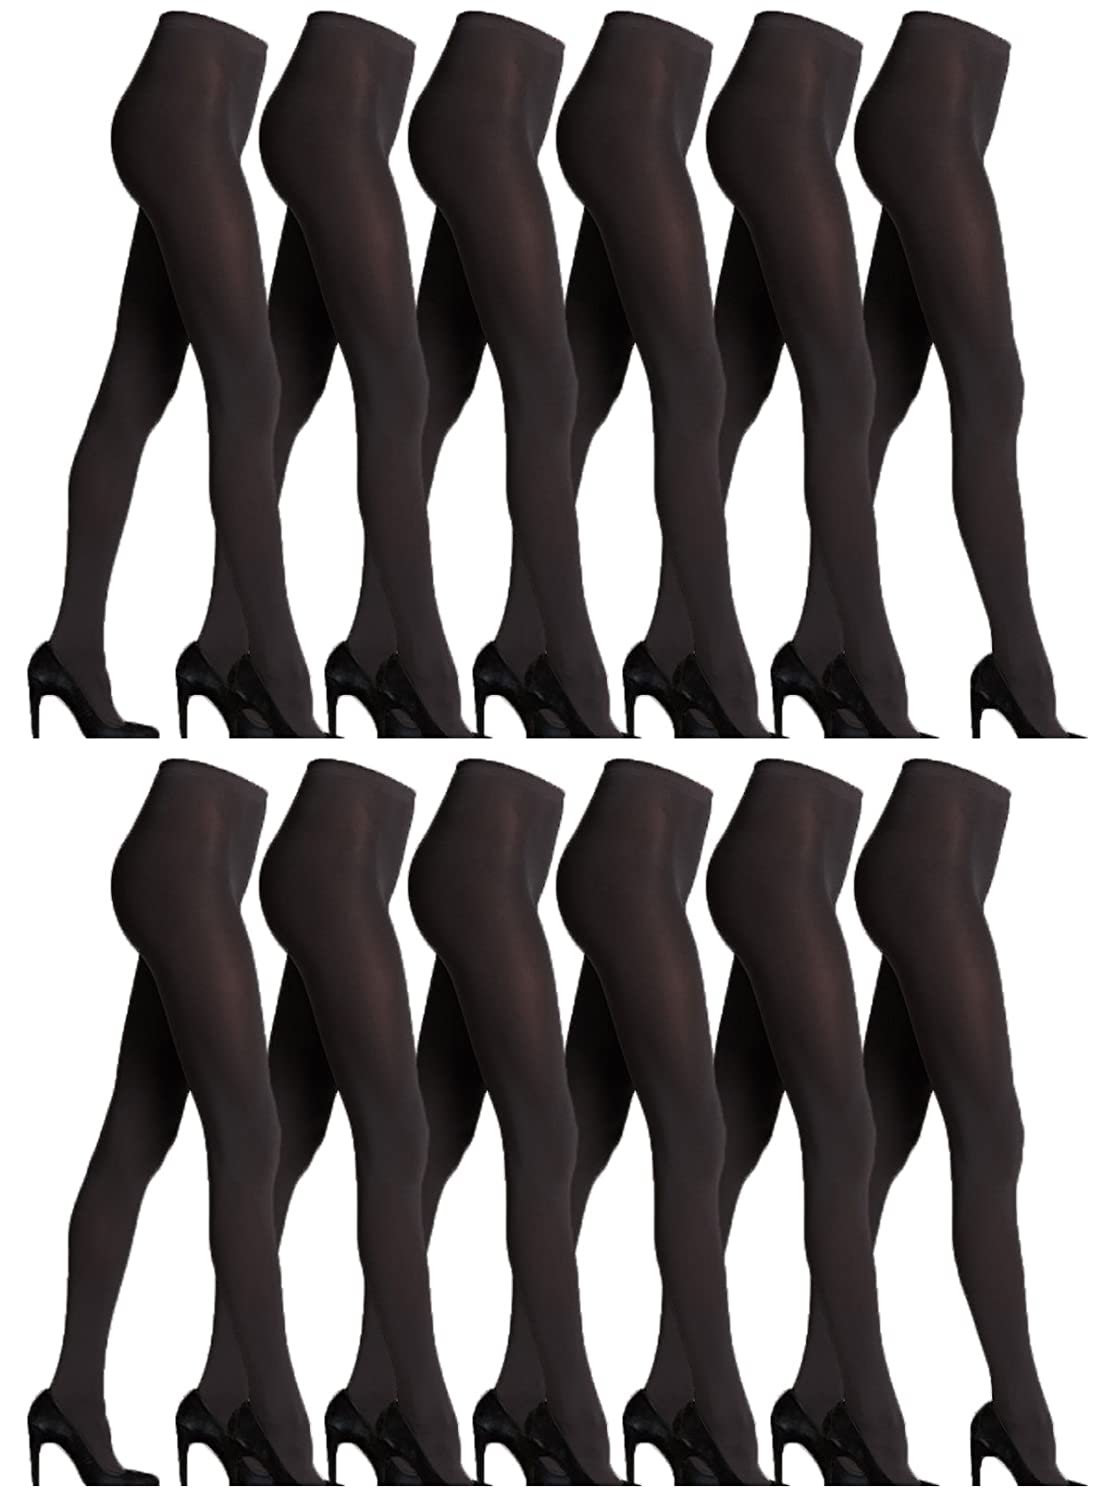 f5f5ca79cd7 ... Tights are perfect for all occasions and every season